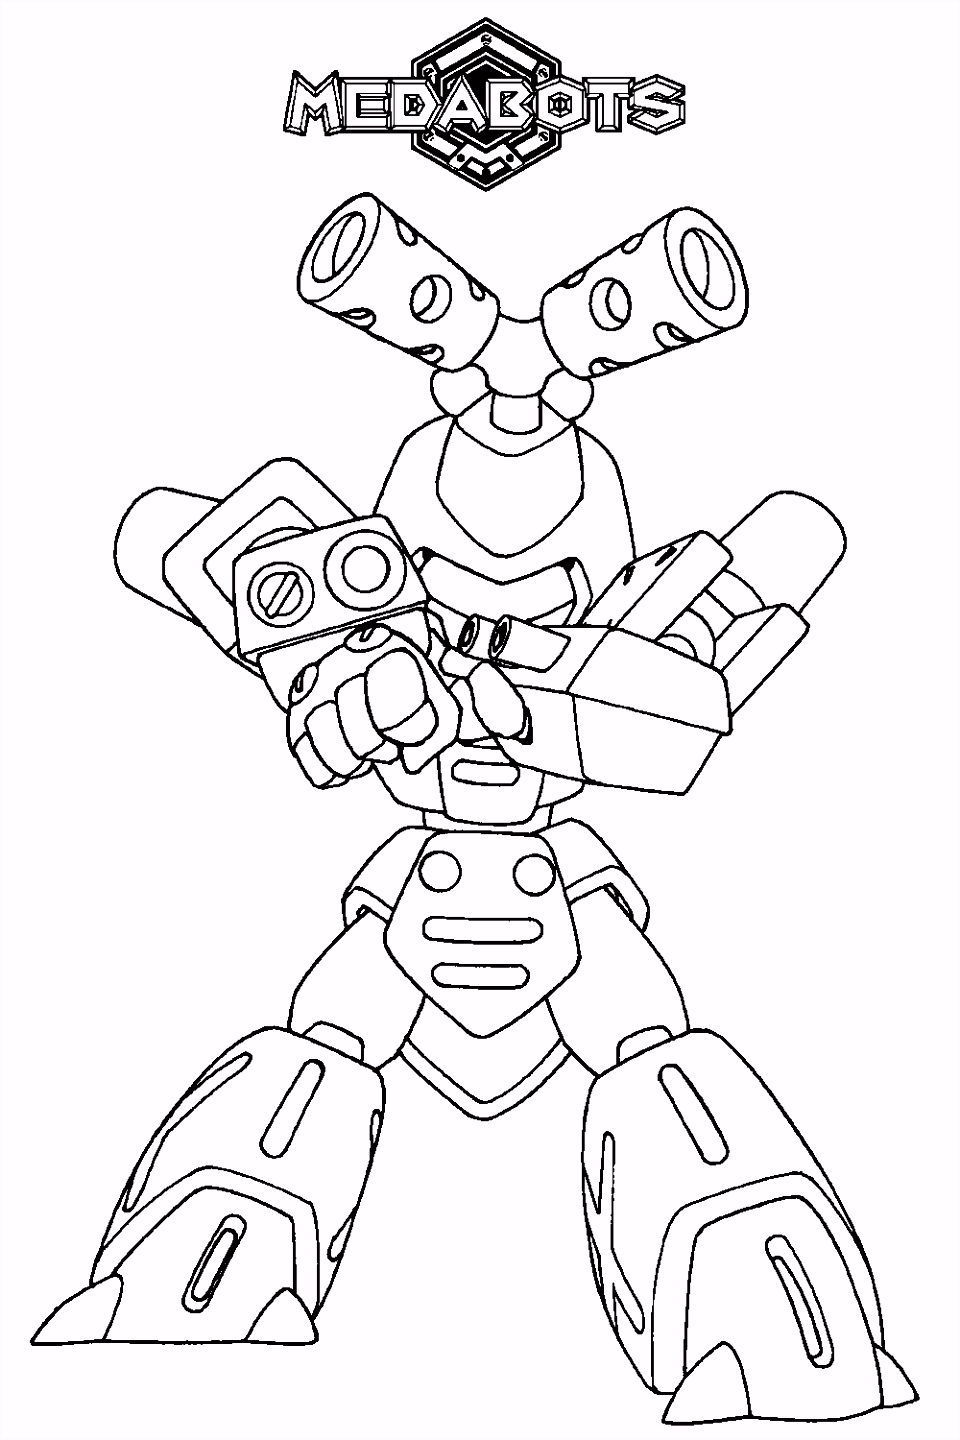 Medabots Coloring Page Tv Series Coloring Page